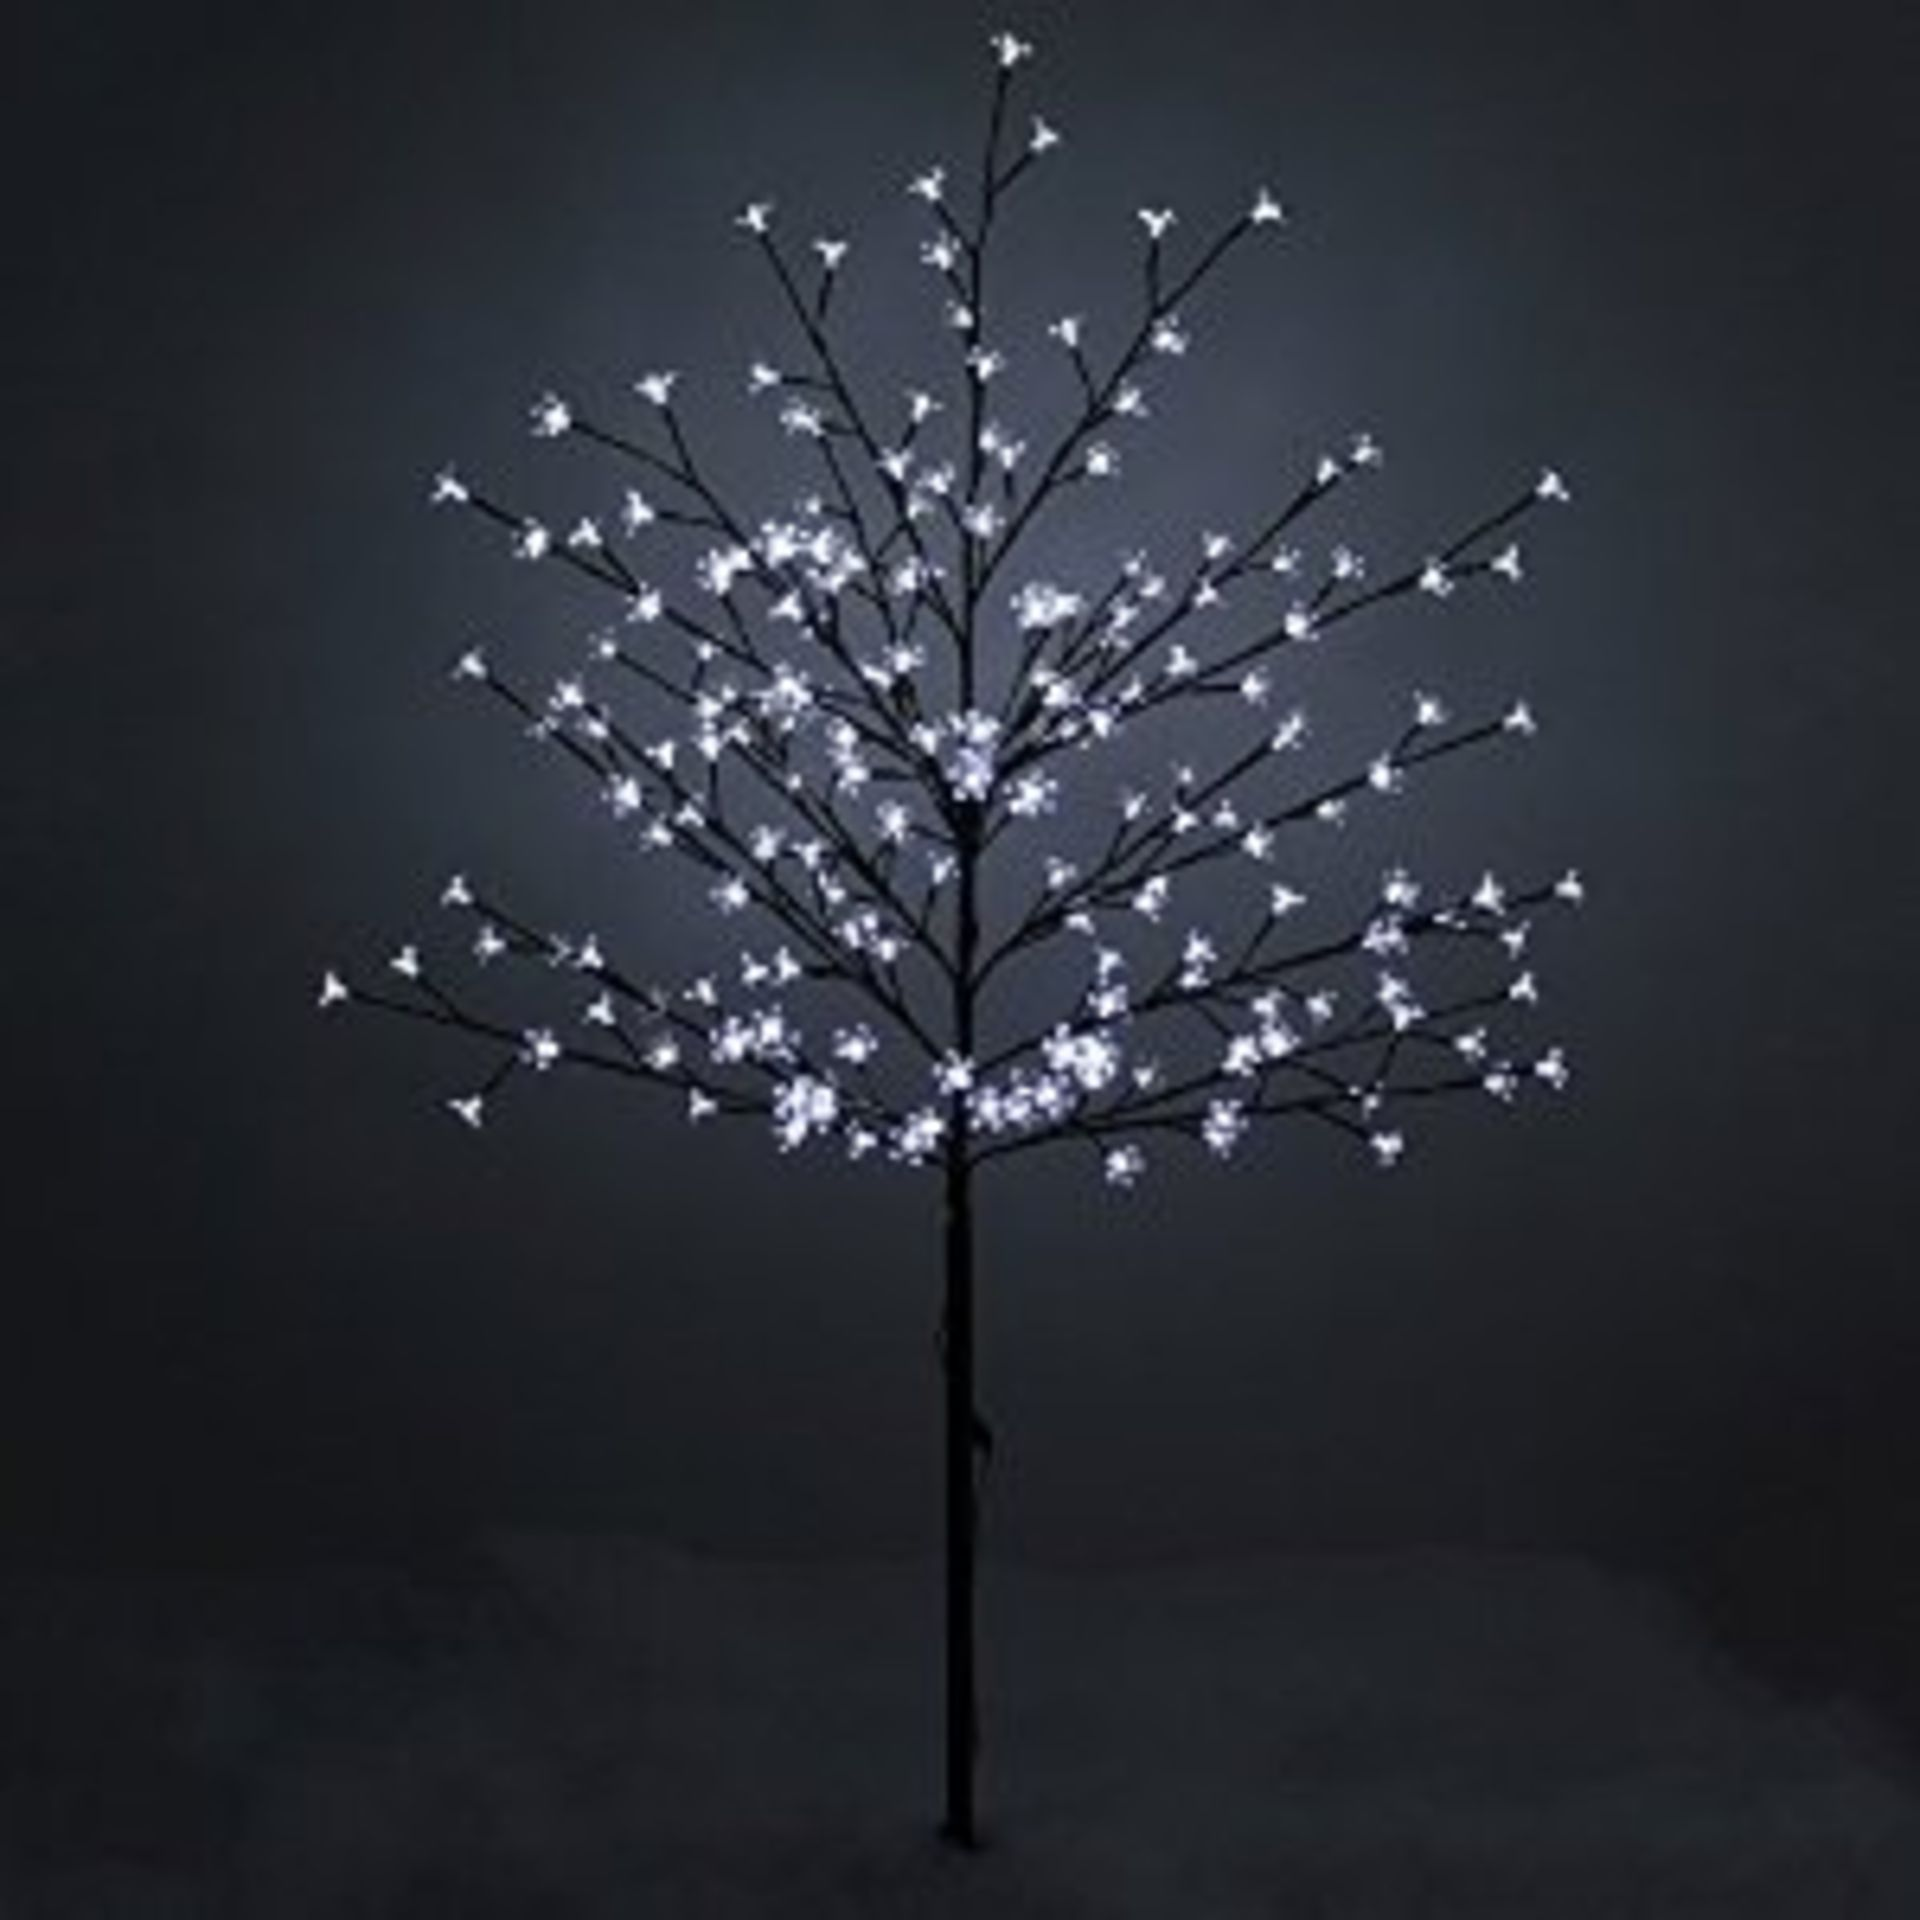 Lot 11962 - V Brand New 150cm Snow White LED Blossom Tree For Indoor And Outdoor Use RRP £54.99